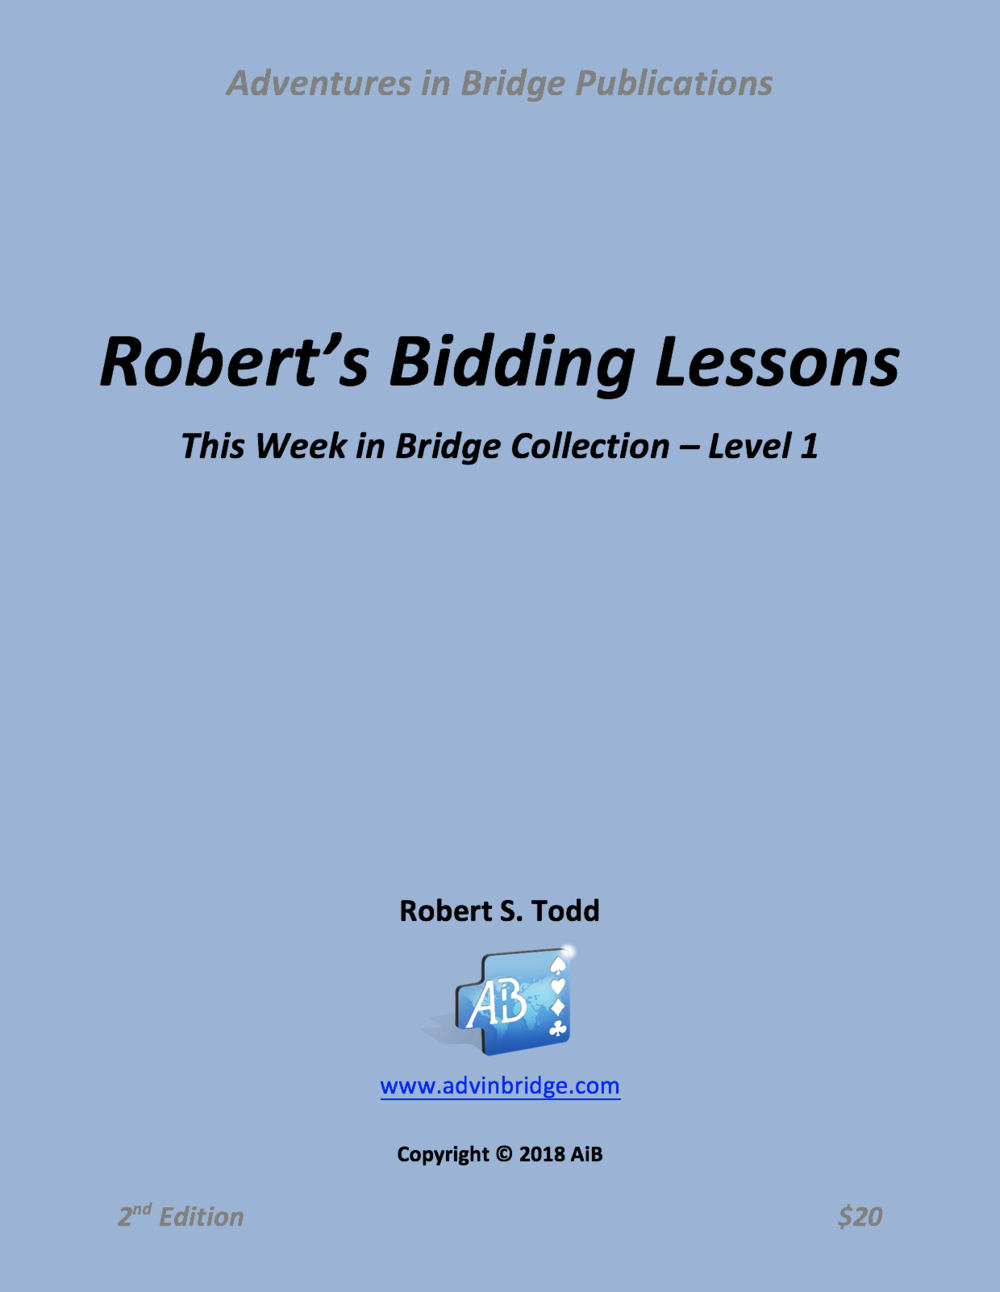 Robert's bidding lessons (2nd Edition) Books are now Available! -  Robert's Bidding Lessons are now available for purchase.  These are collections of TWiBs for each level organized by topic and in a recommended reading order.  They are available in published in large size (8.5